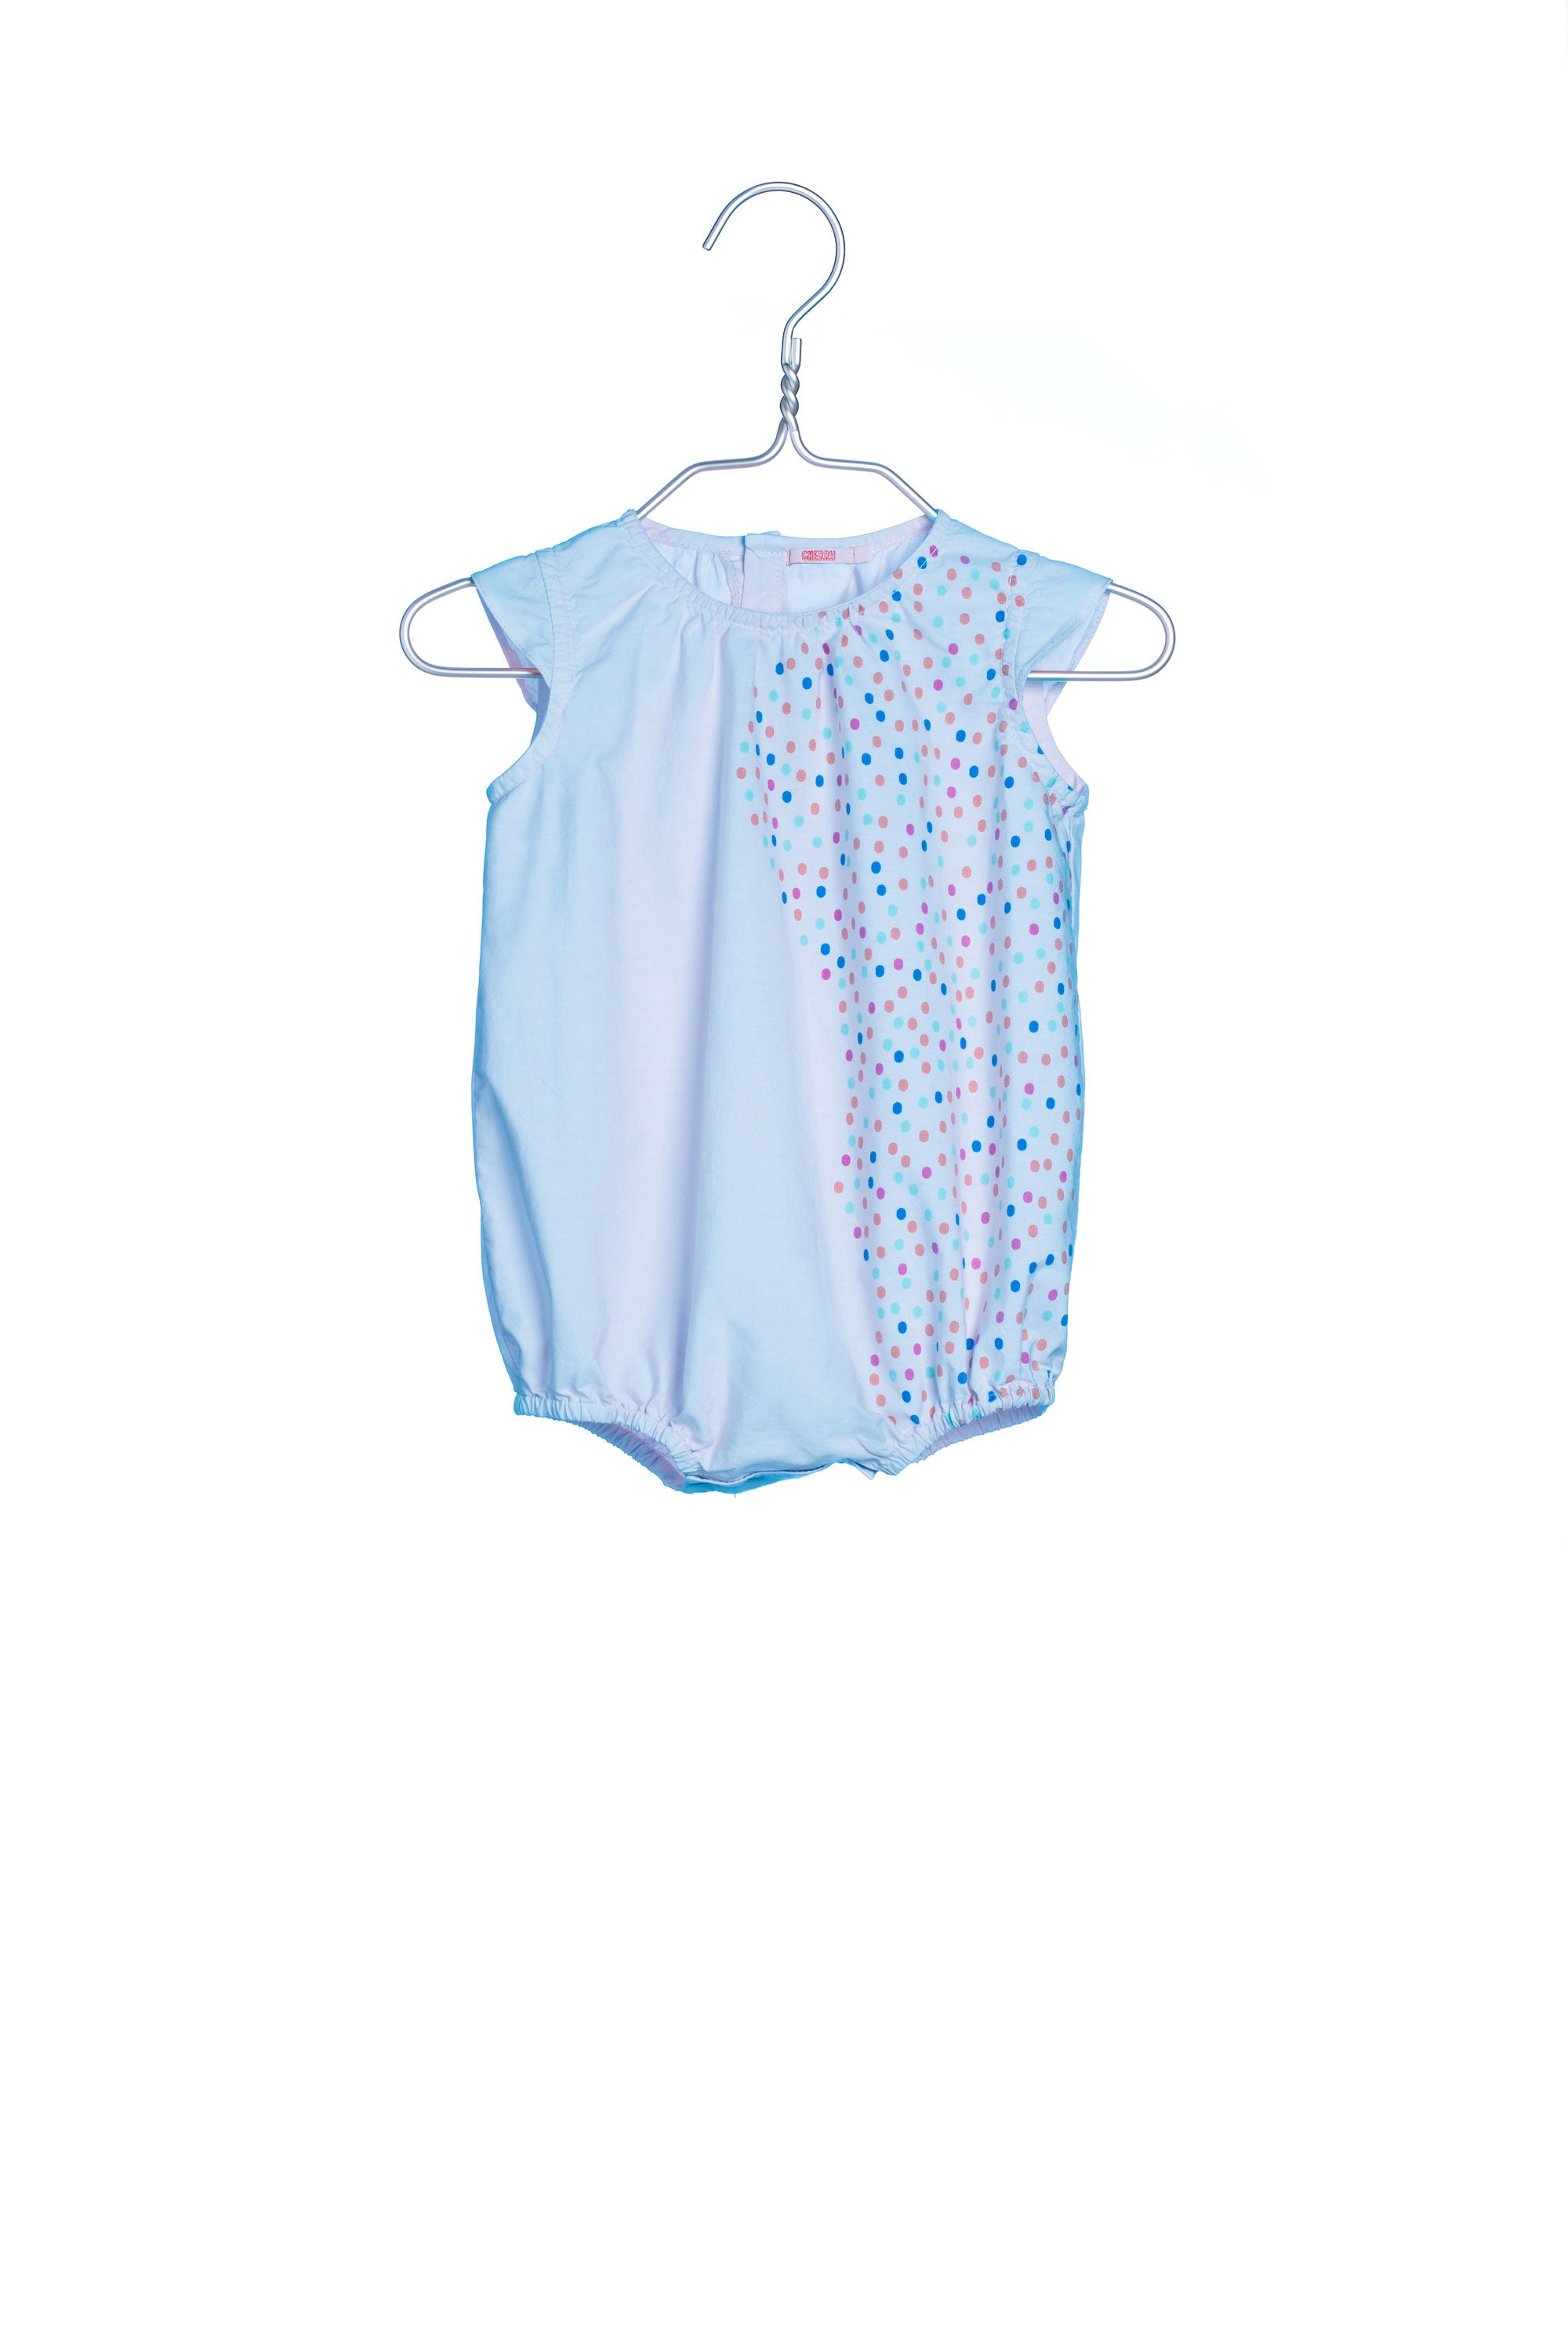 1748 Dots Overall Blue